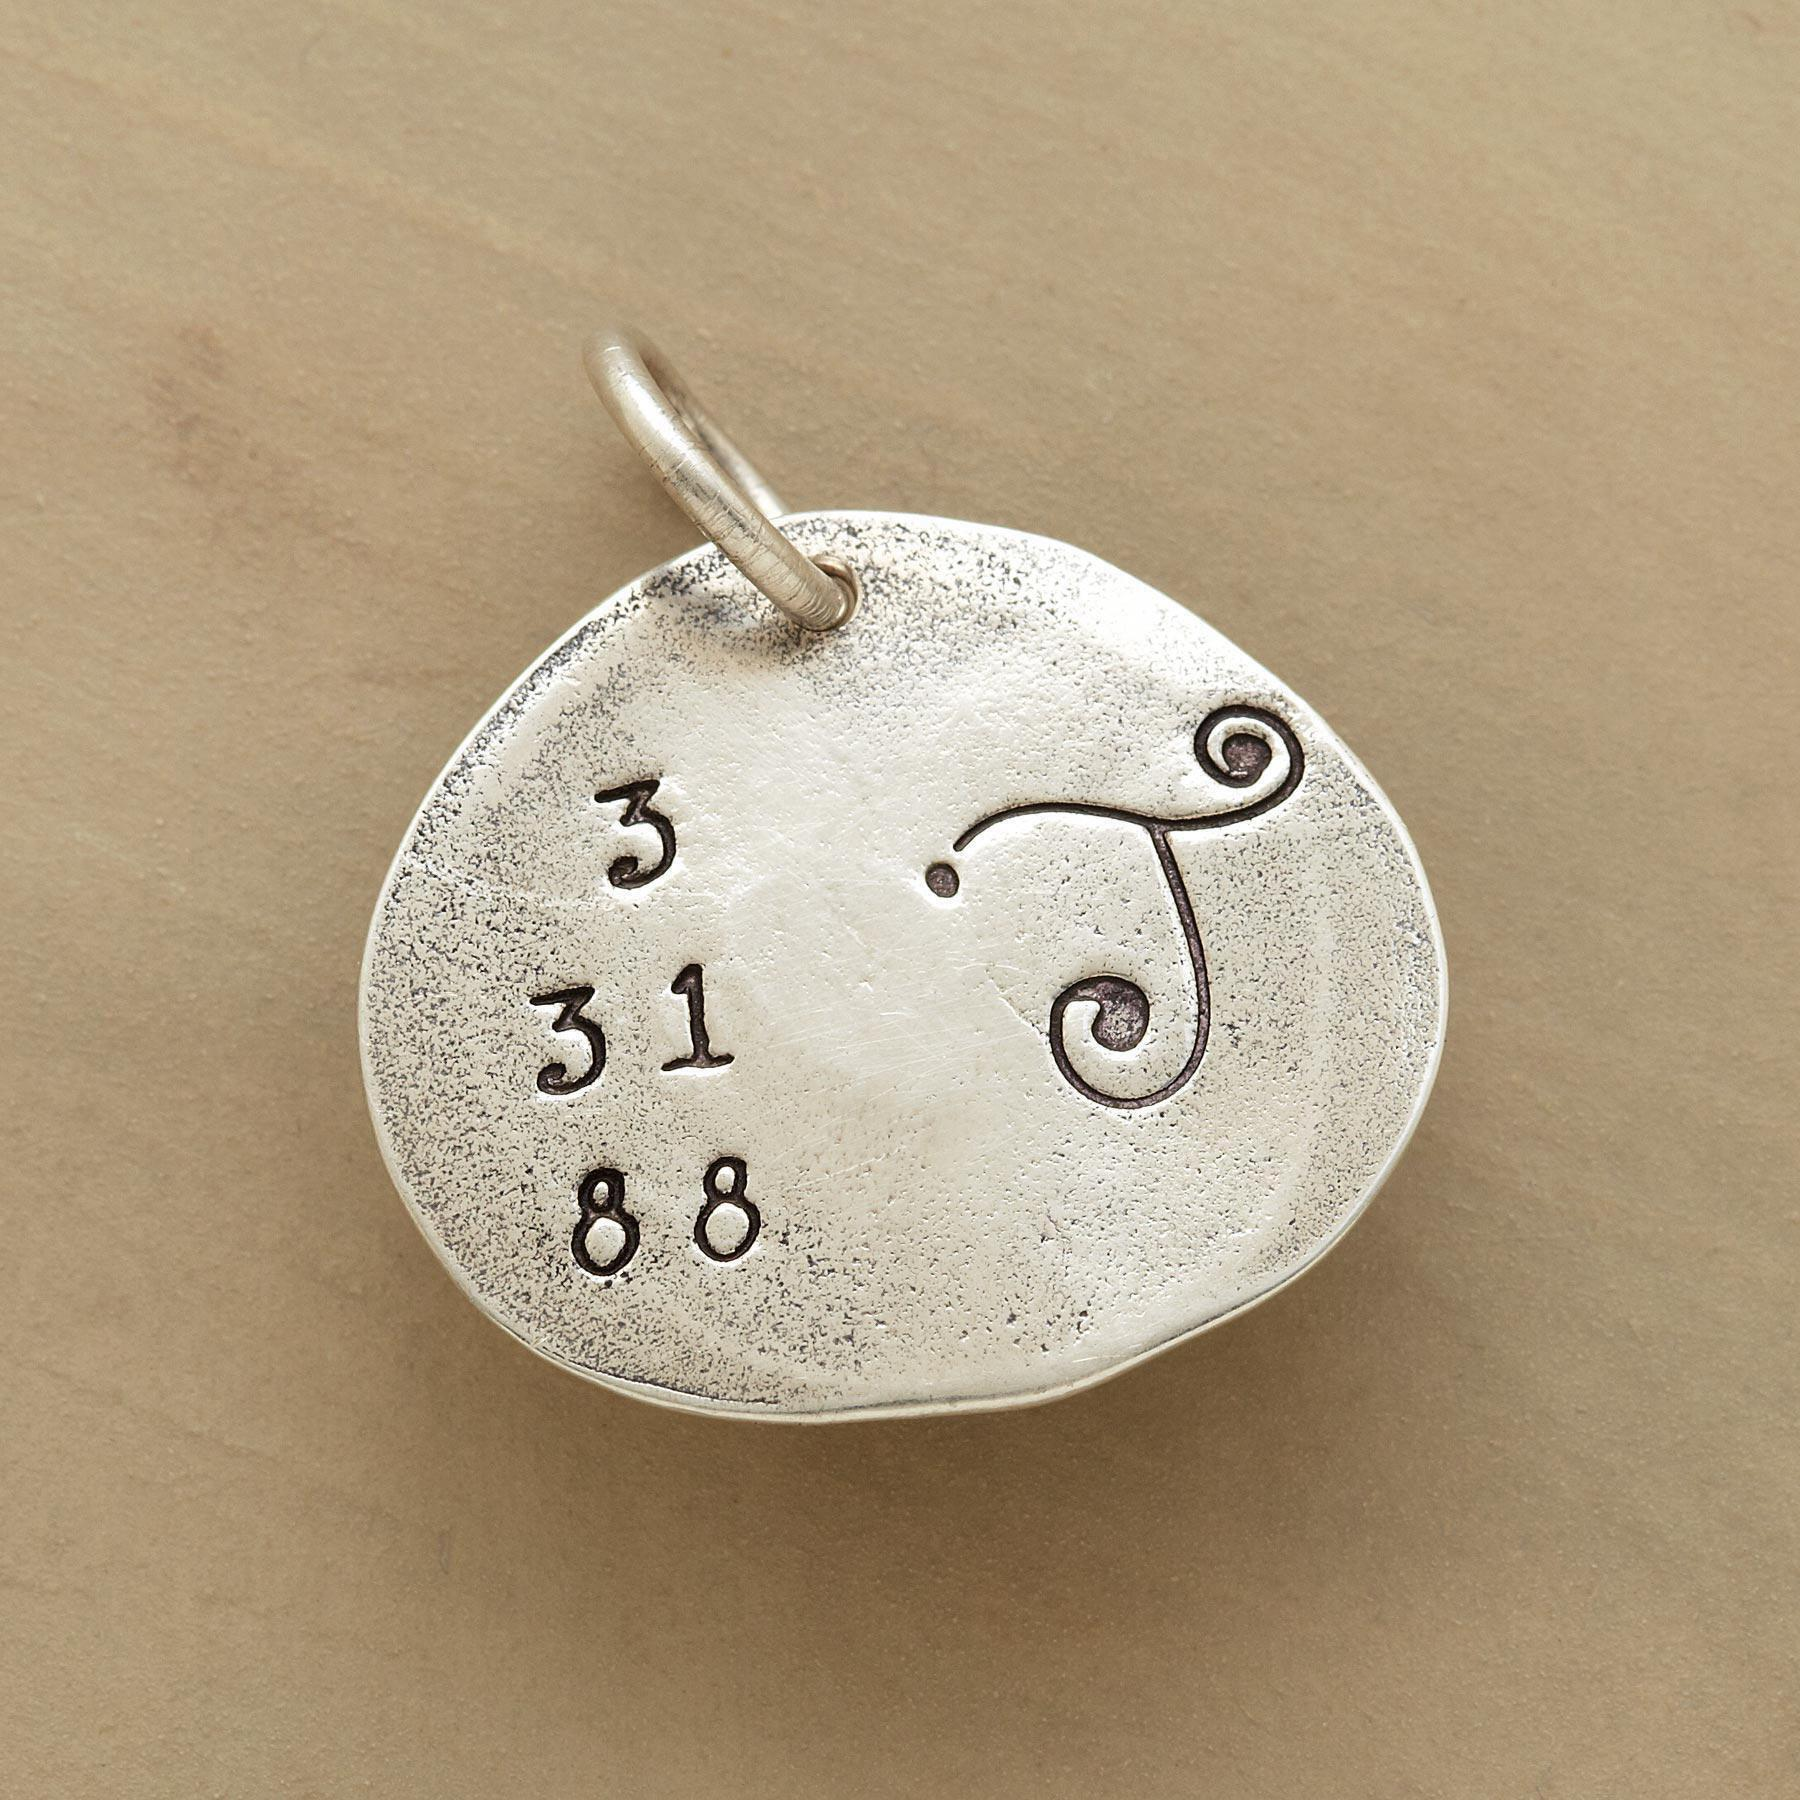 STERLING SILVER DATE & INITIAL CHARM: View 1